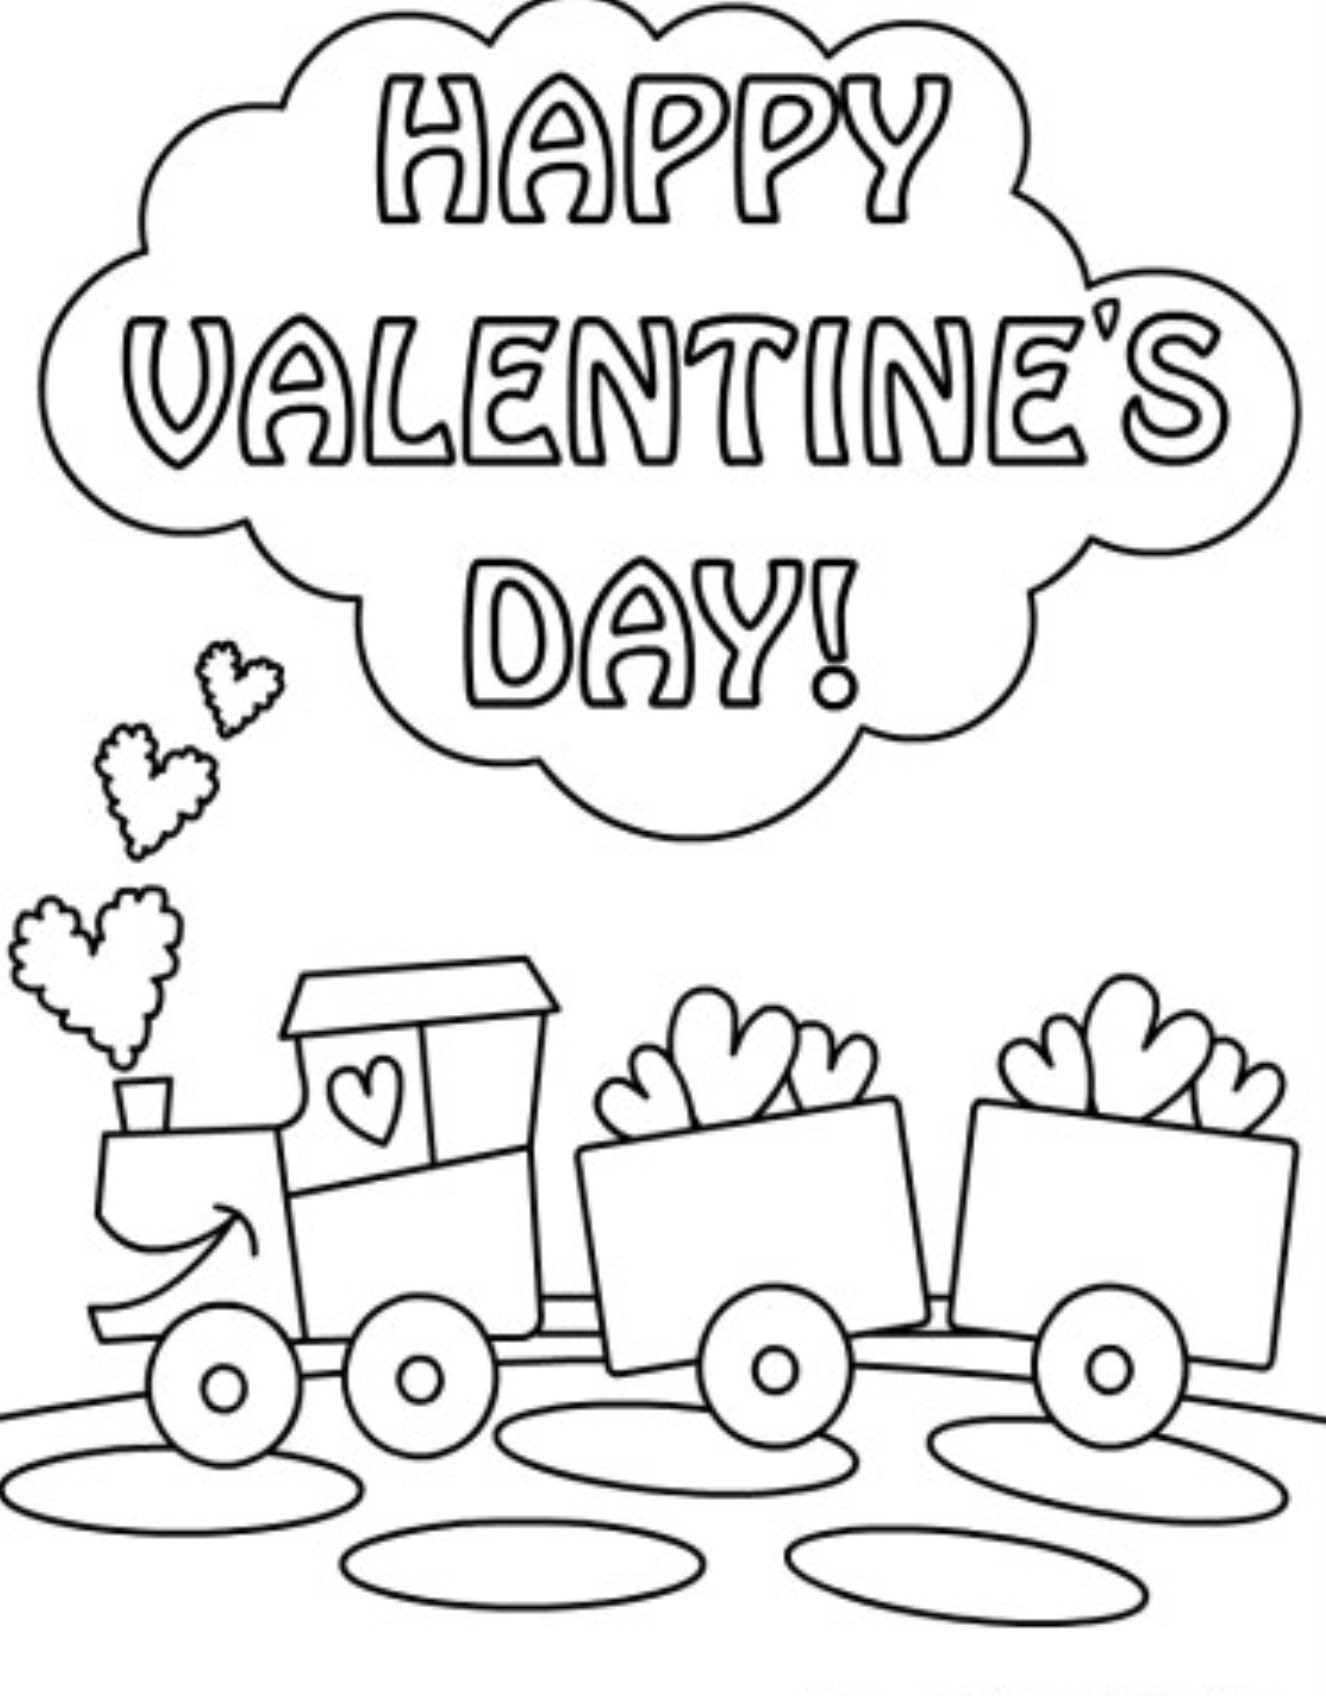 1326x1696 Amazing Happy Valentines Day Coloring Pages For Kids Colossal